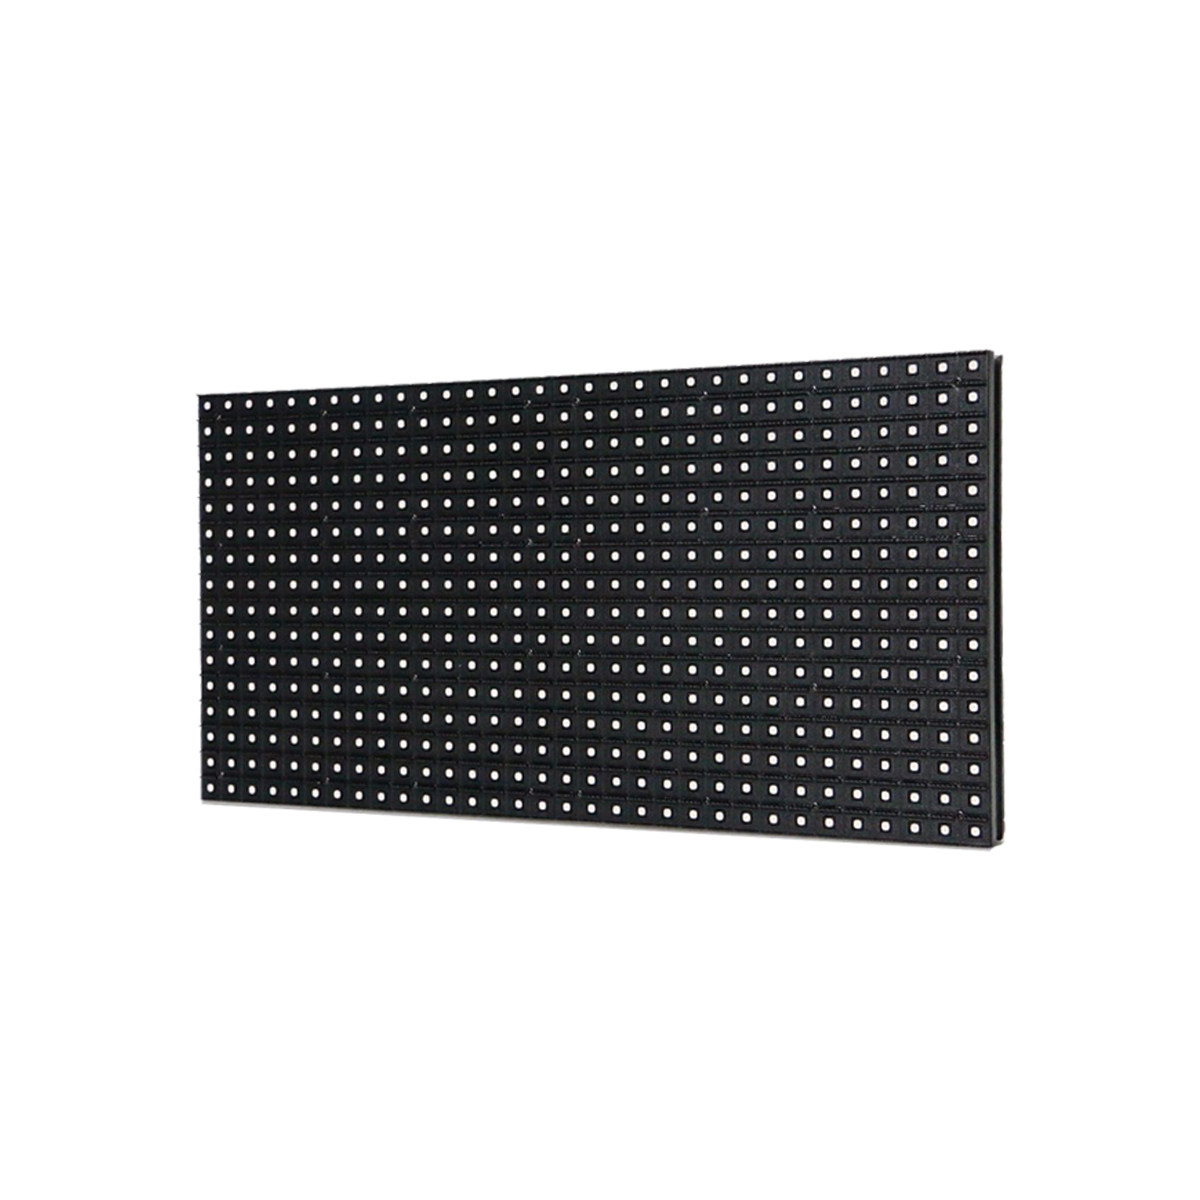 P5 Outdoor SMD LED Display Module 320*160mm SMD2727 5000cd/㎡ Brightness 1920Hz High Refresh